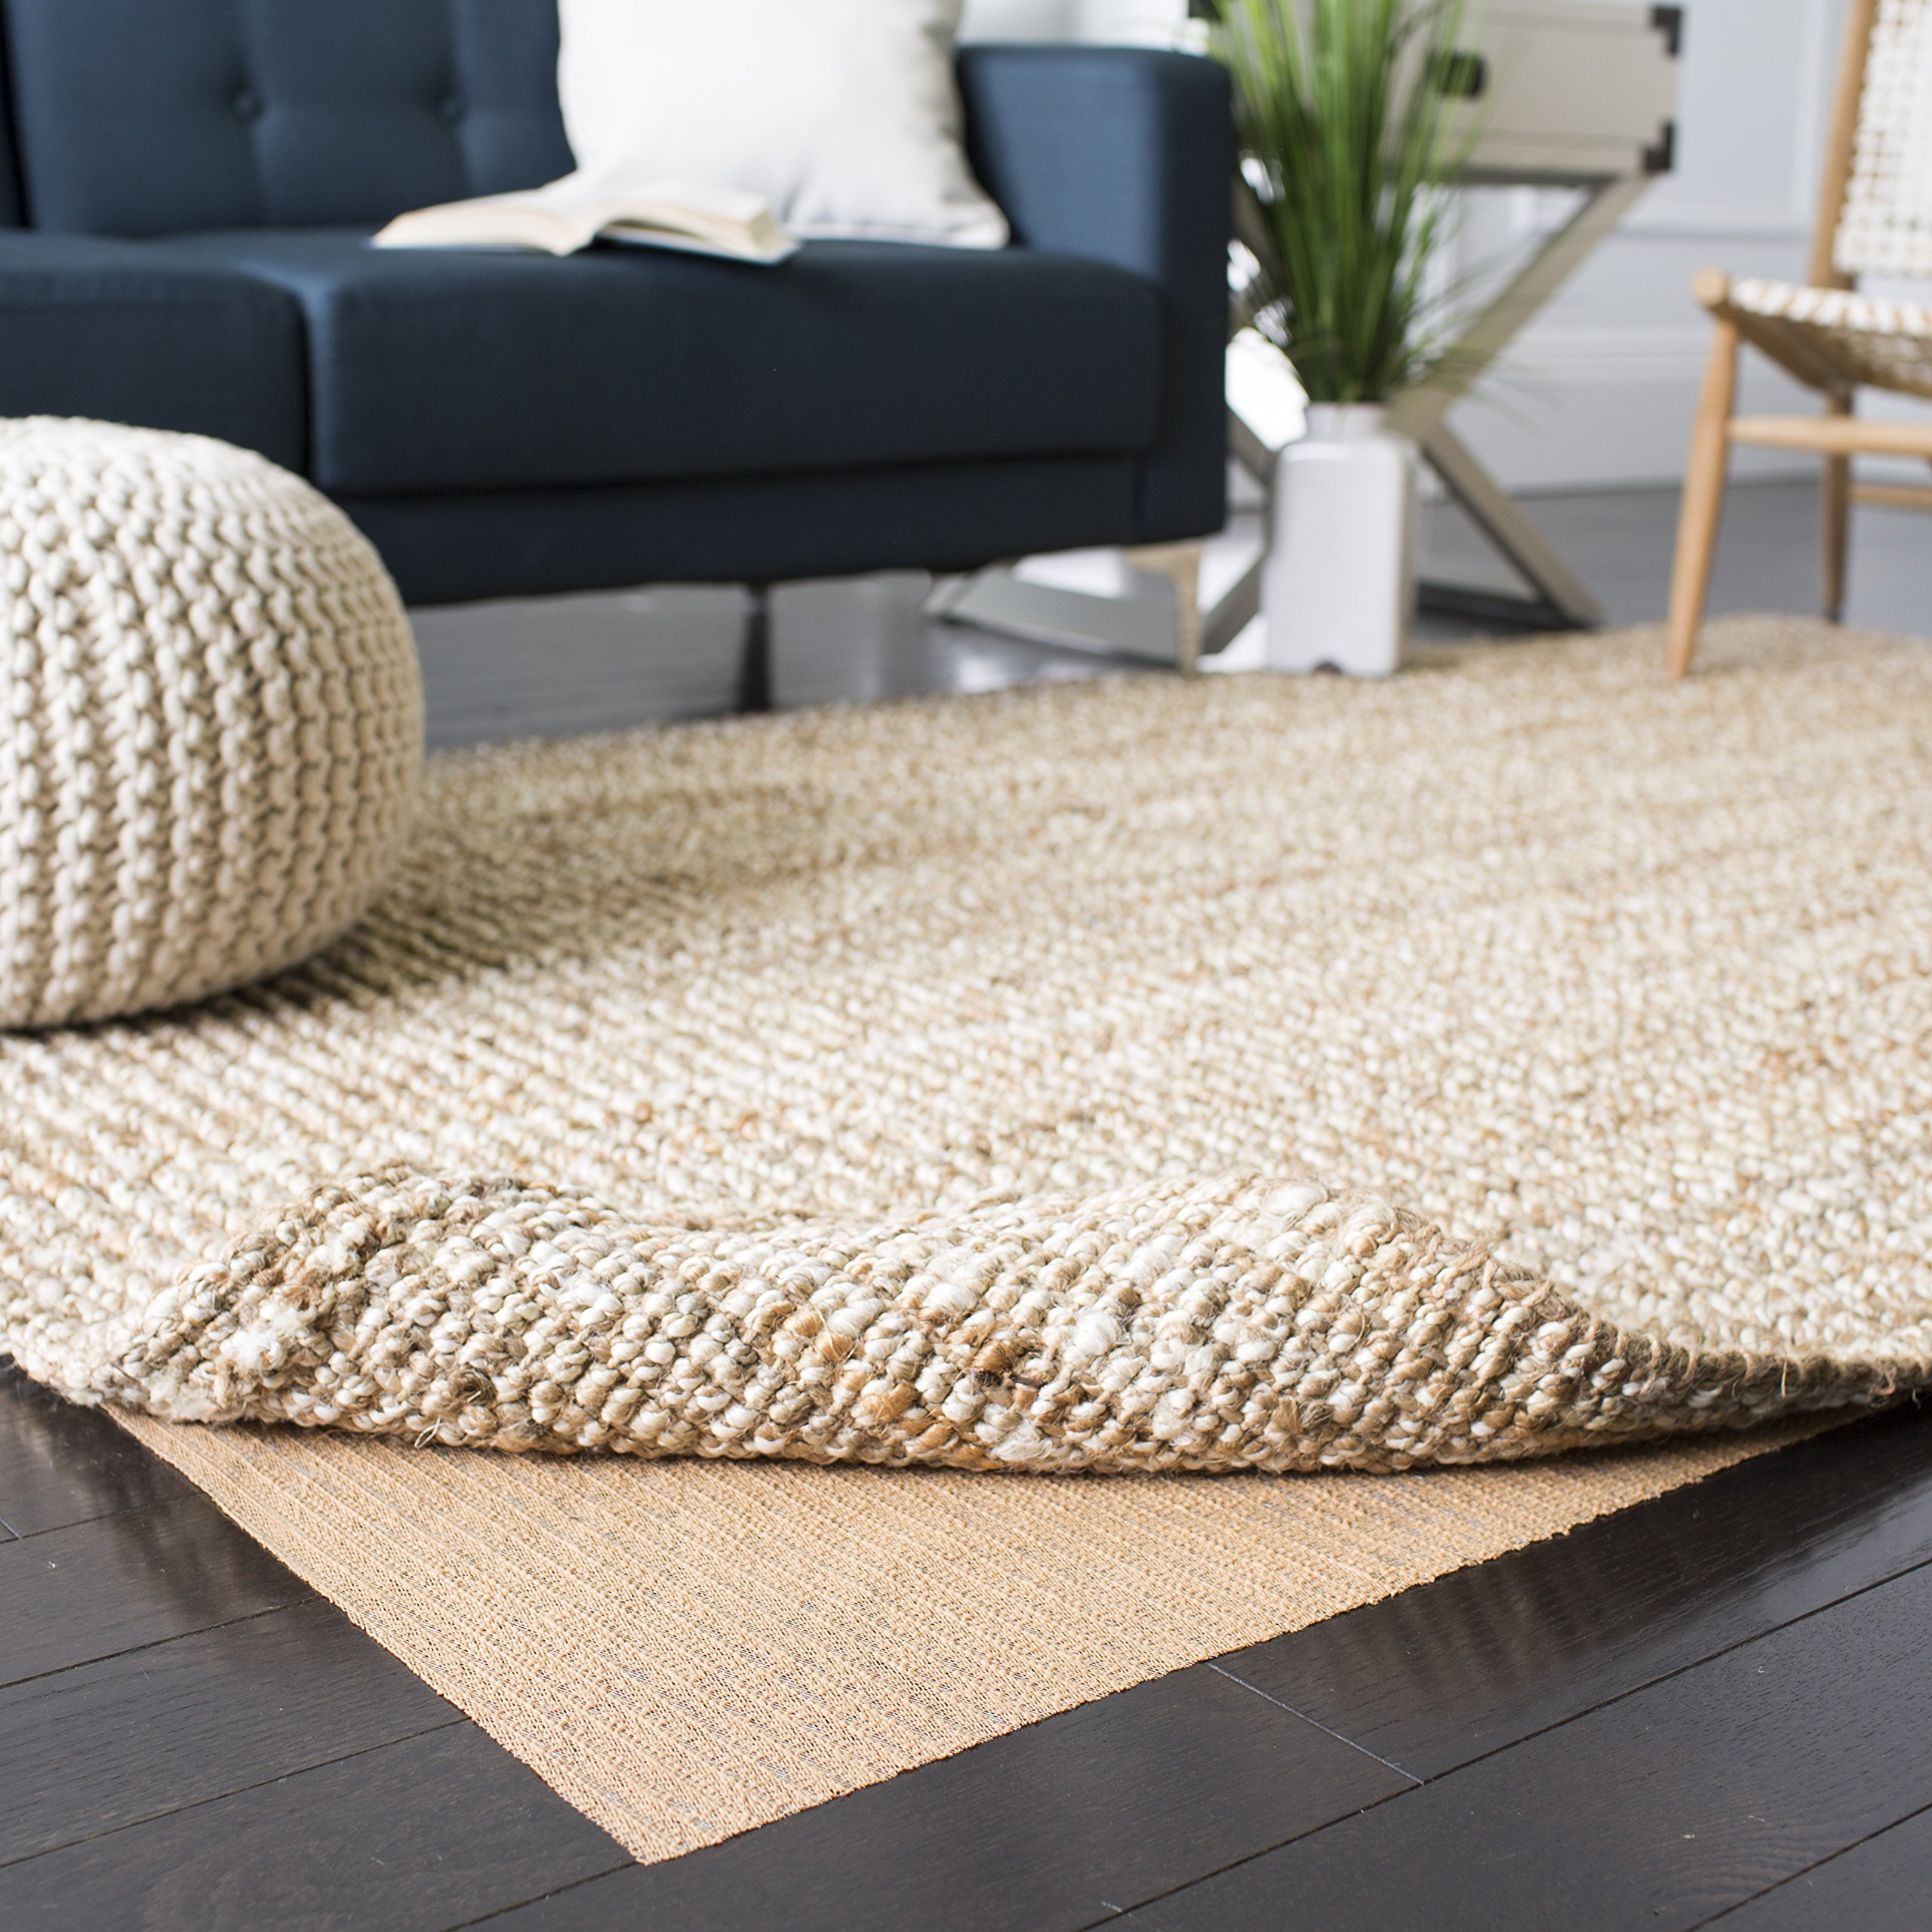 Safavieh Padding Collection PAD120 Beige Area Rug, 8 feet by 10 feet (8' x 10')